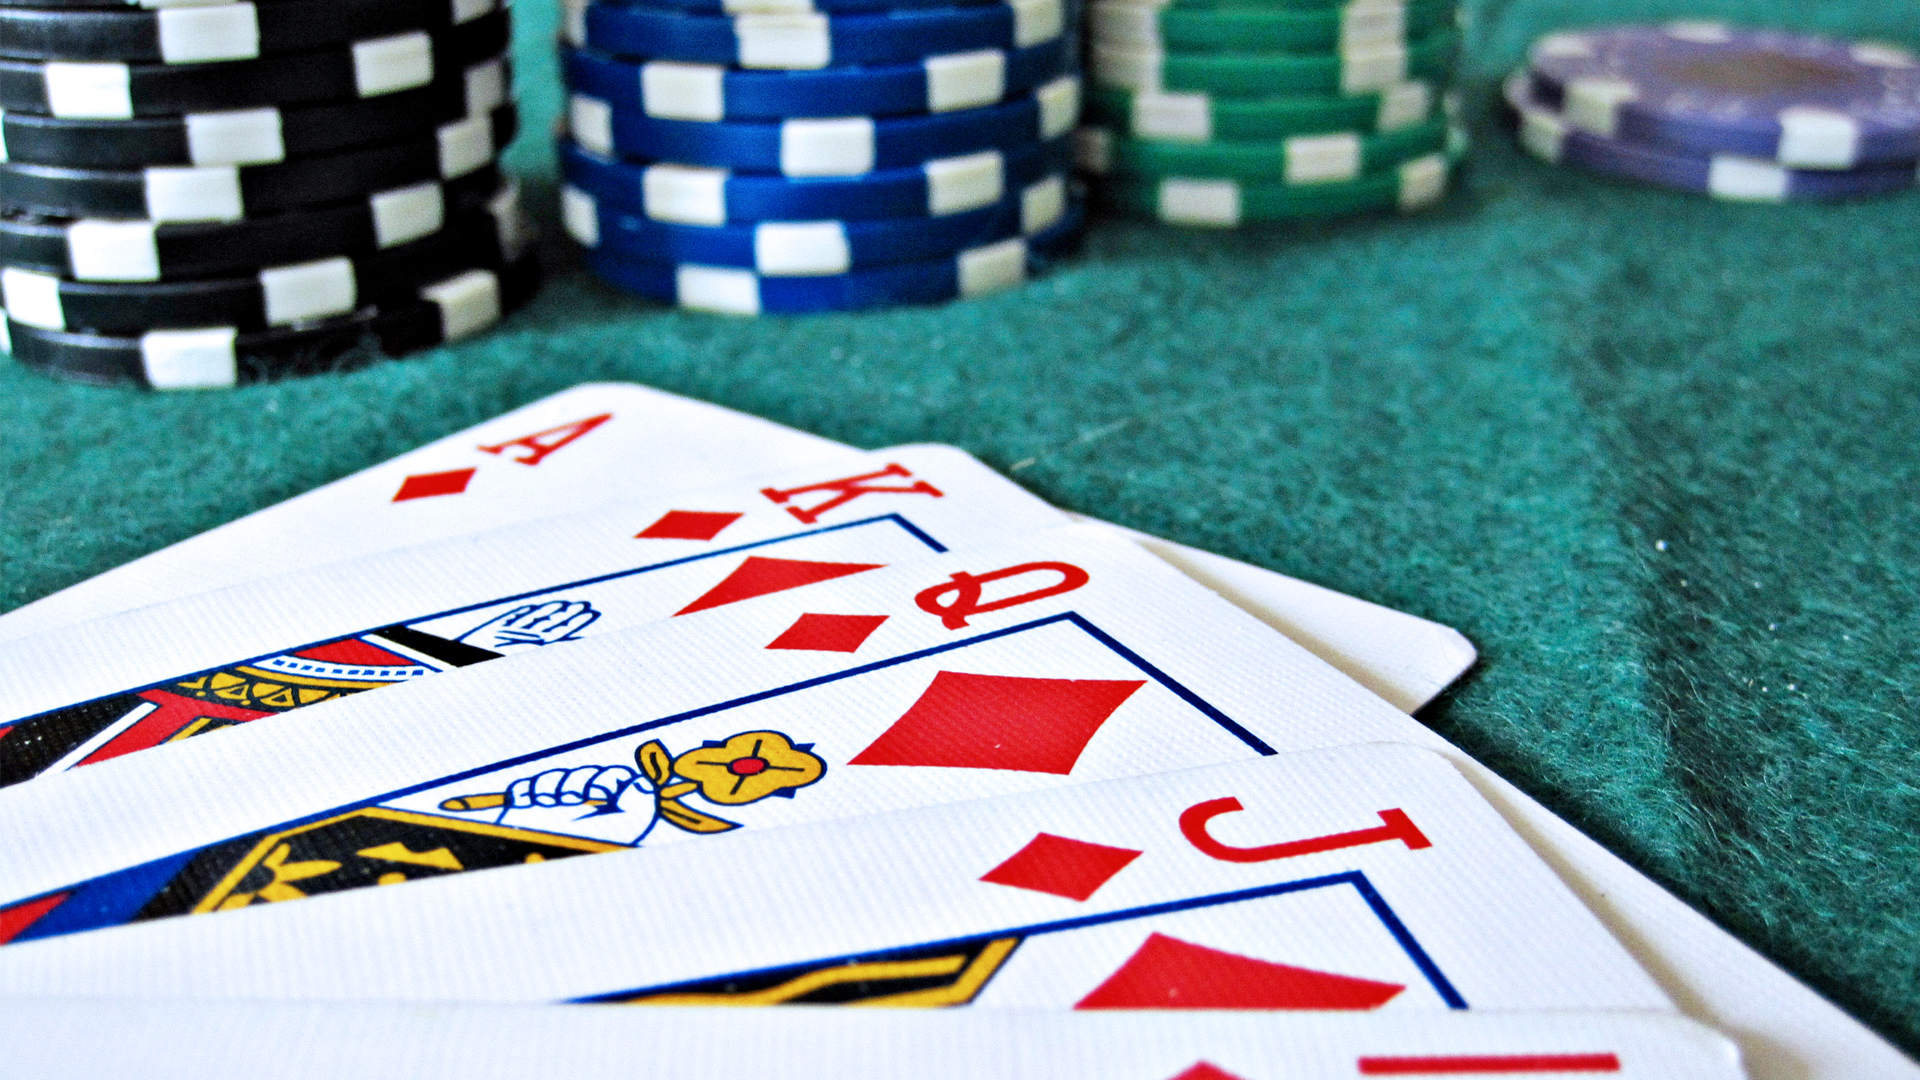 3032055-poster-p-1-3032055-5-things-poker-can-teach-us-about-business